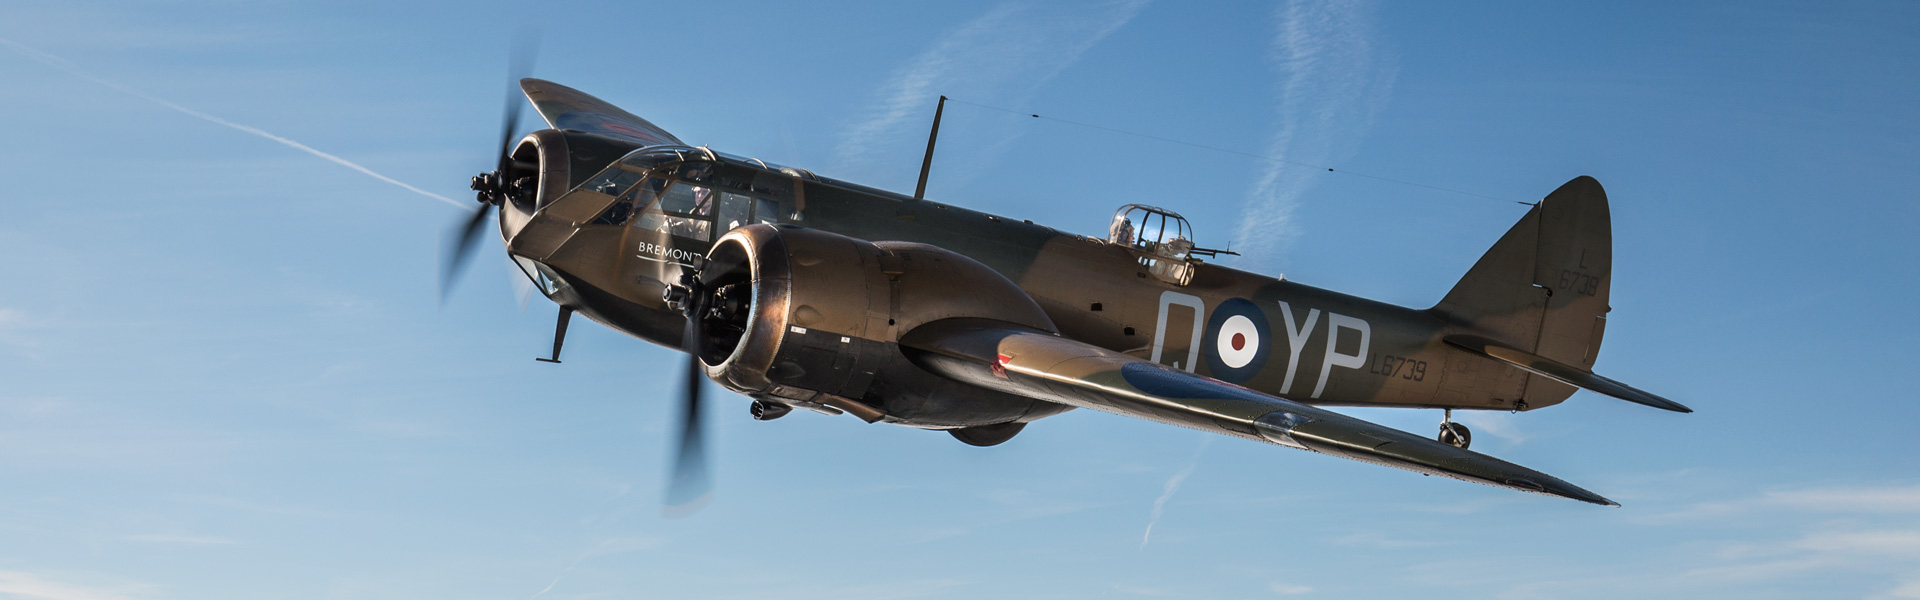 Aerial-Collective-Blenheim-in-flight